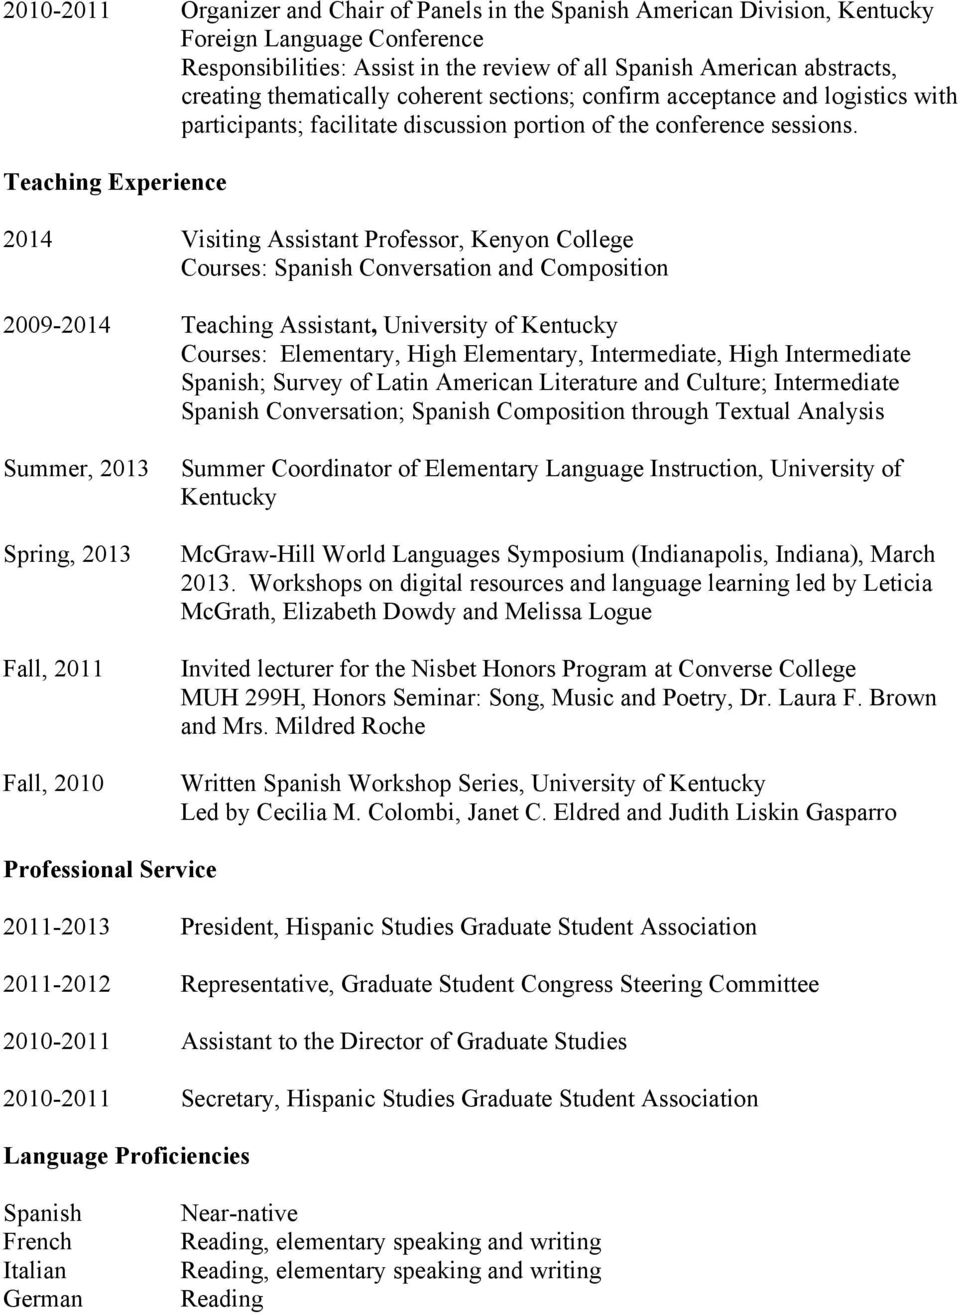 Teaching Experience 2014 Visiting Assistant Professor, Kenyon College Courses: Spanish Conversation and Composition 2009-2014 Teaching Assistant, University of Kentucky Courses: Elementary, High